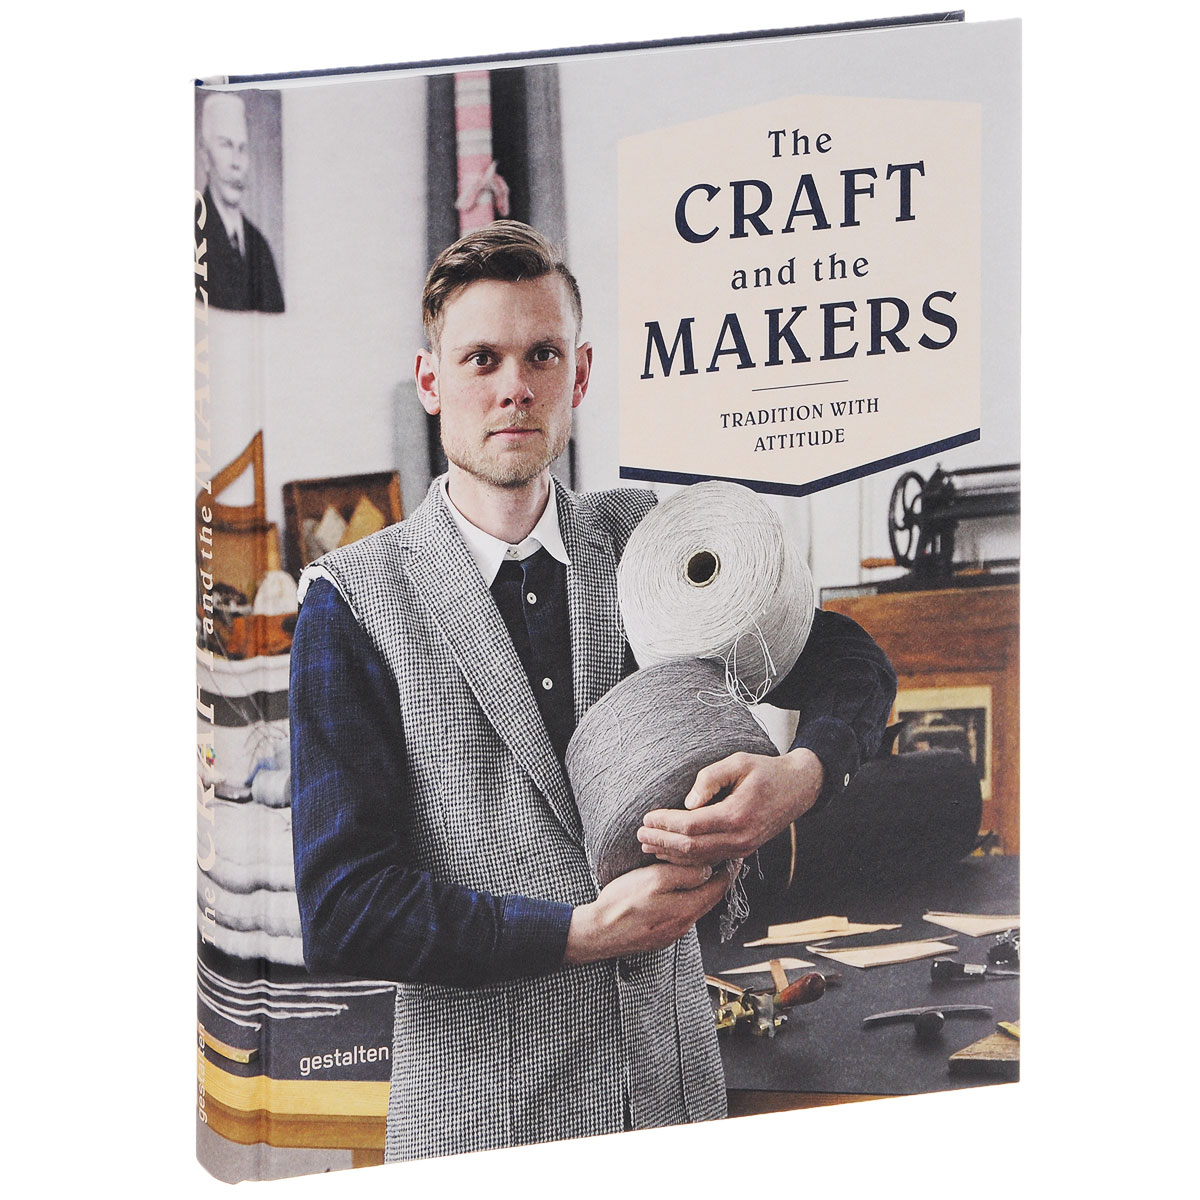 The Craft and the Makers: Between Tradition and Attitude caleb williams or things as they are